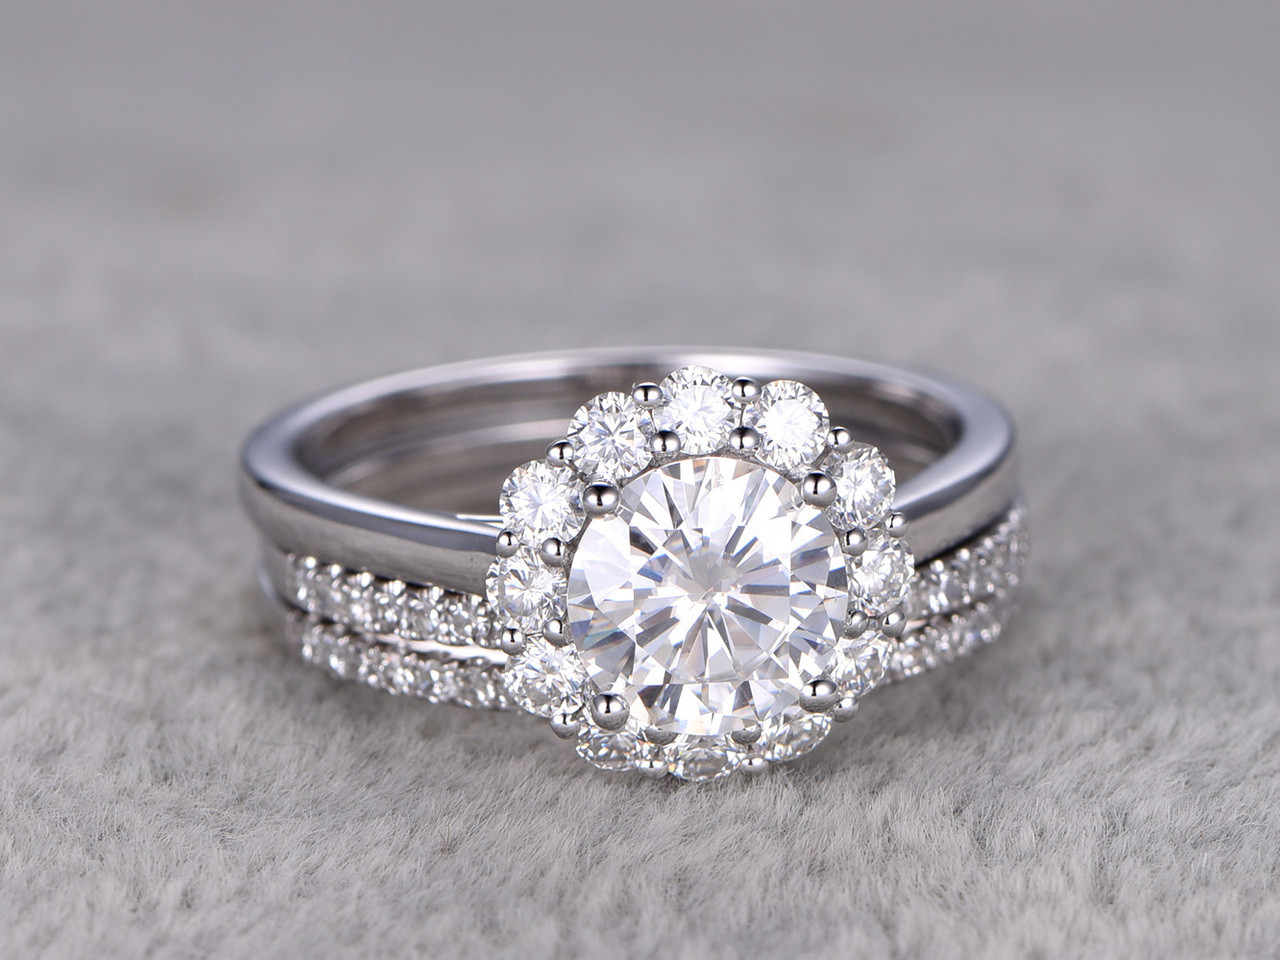 Flower Moissanite Wedding Ring Set Diamond Curved Matching Band